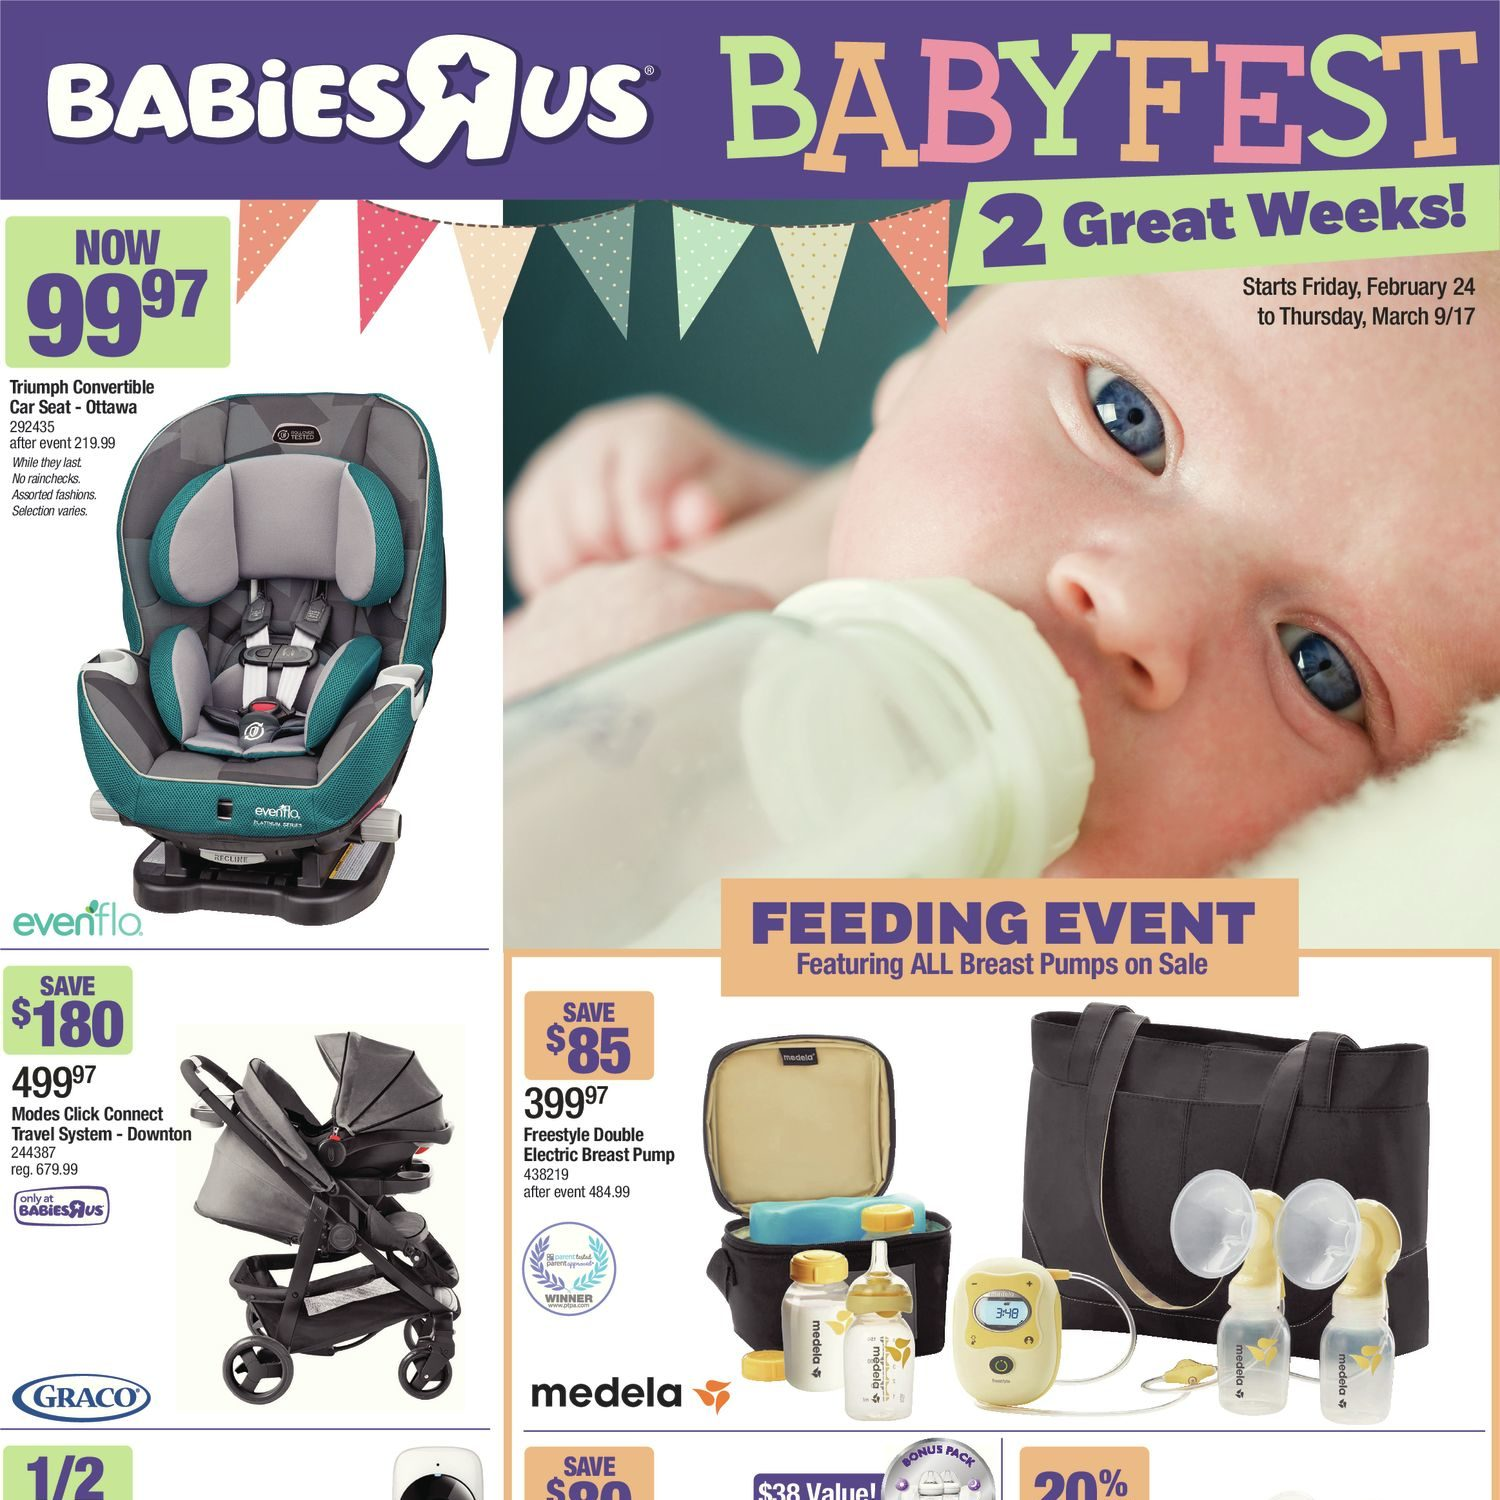 Baby Teethers Babies R Us Babies R Us Weekly Flyer 2 Great Weeks Babyfest Sale